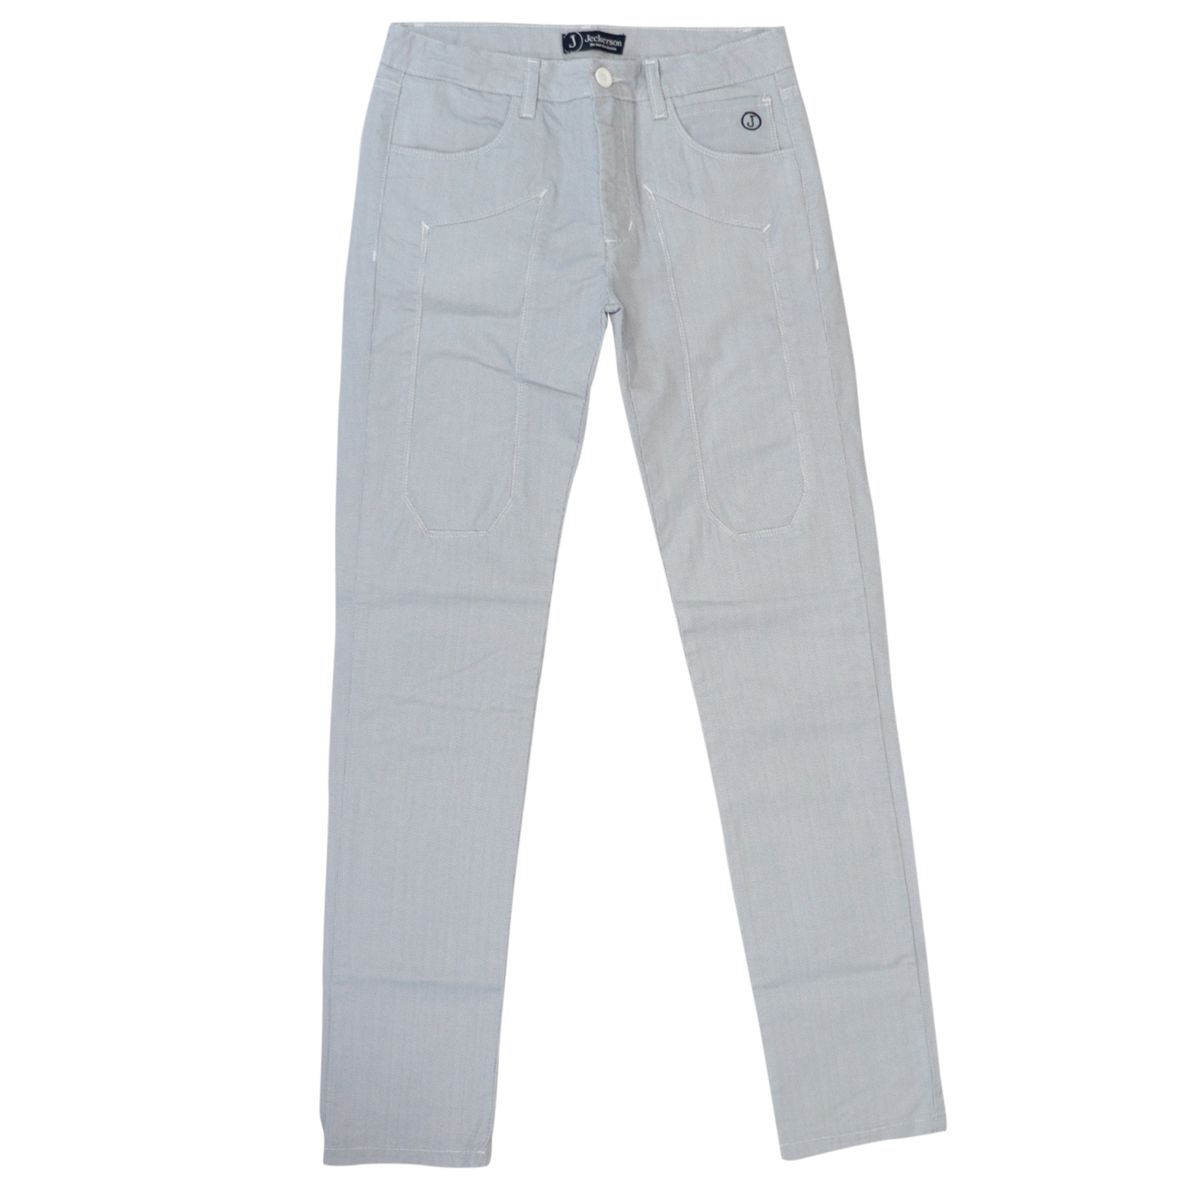 Micro-patterned cotton trousers with patches Fantasy white Jeckerson